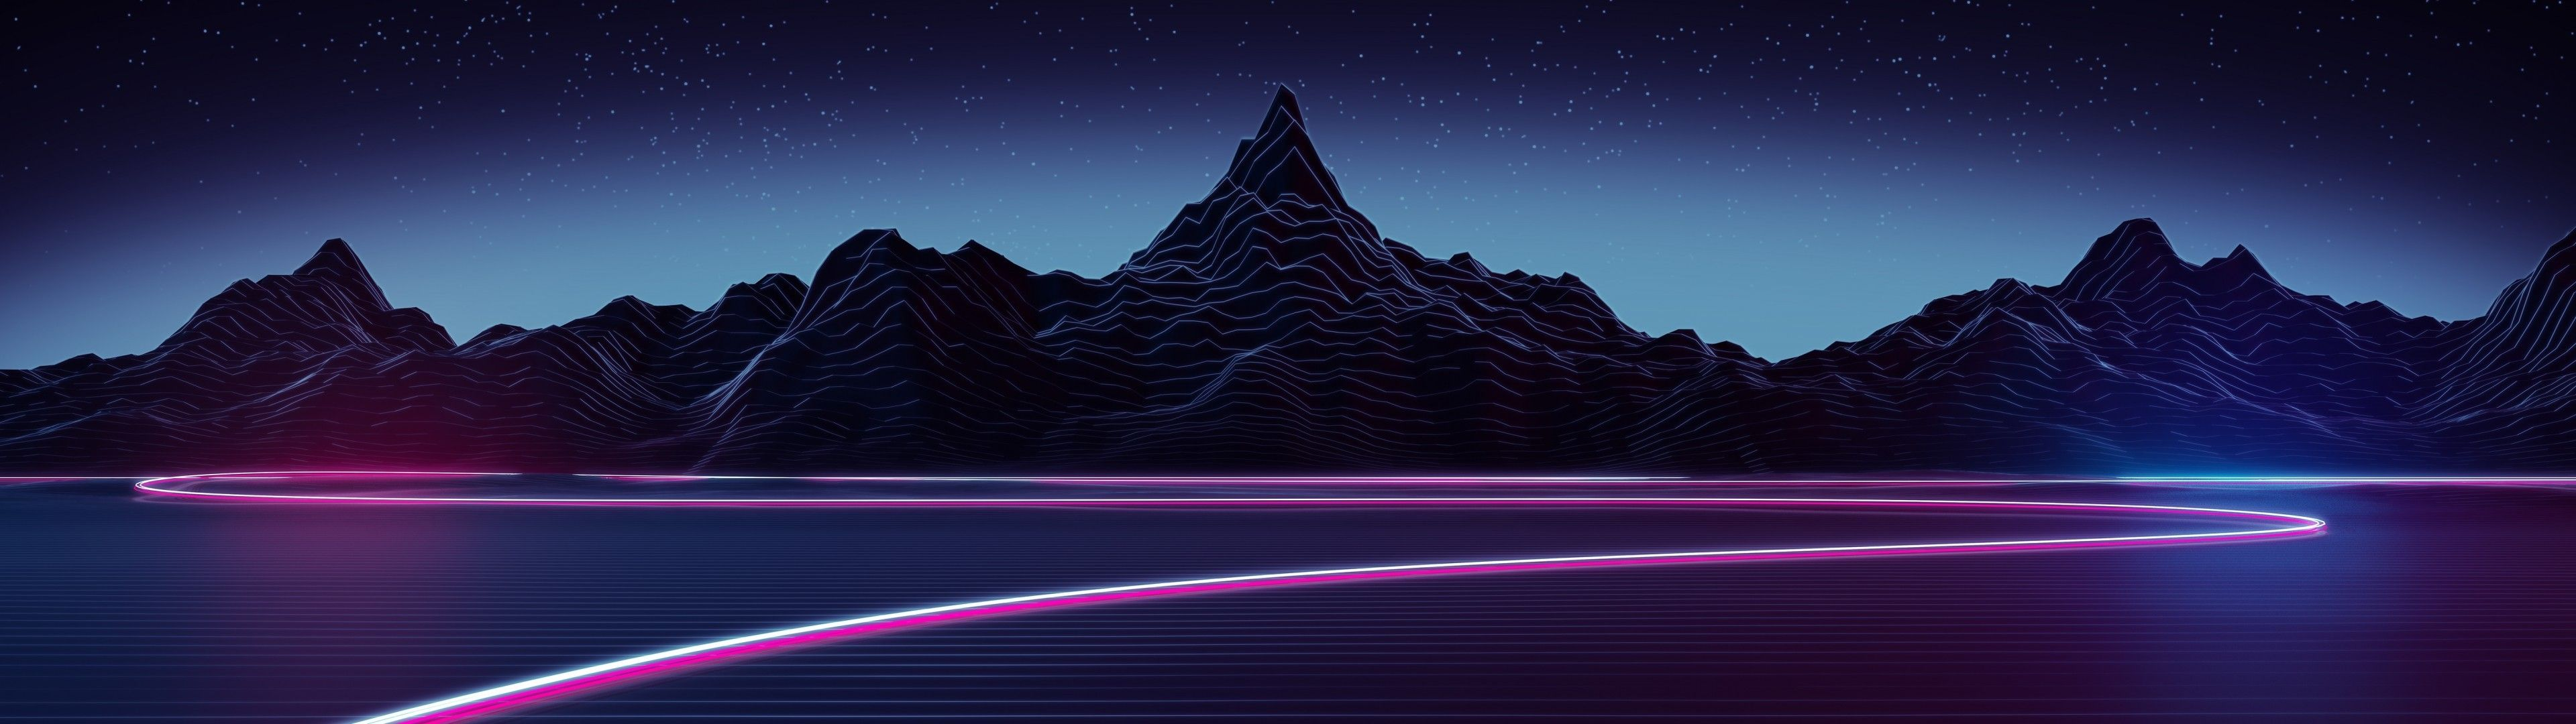 Neon 3840x1080 Wallpapers Top Free Neon 3840x1080 Backgrounds Wallpaperaccess